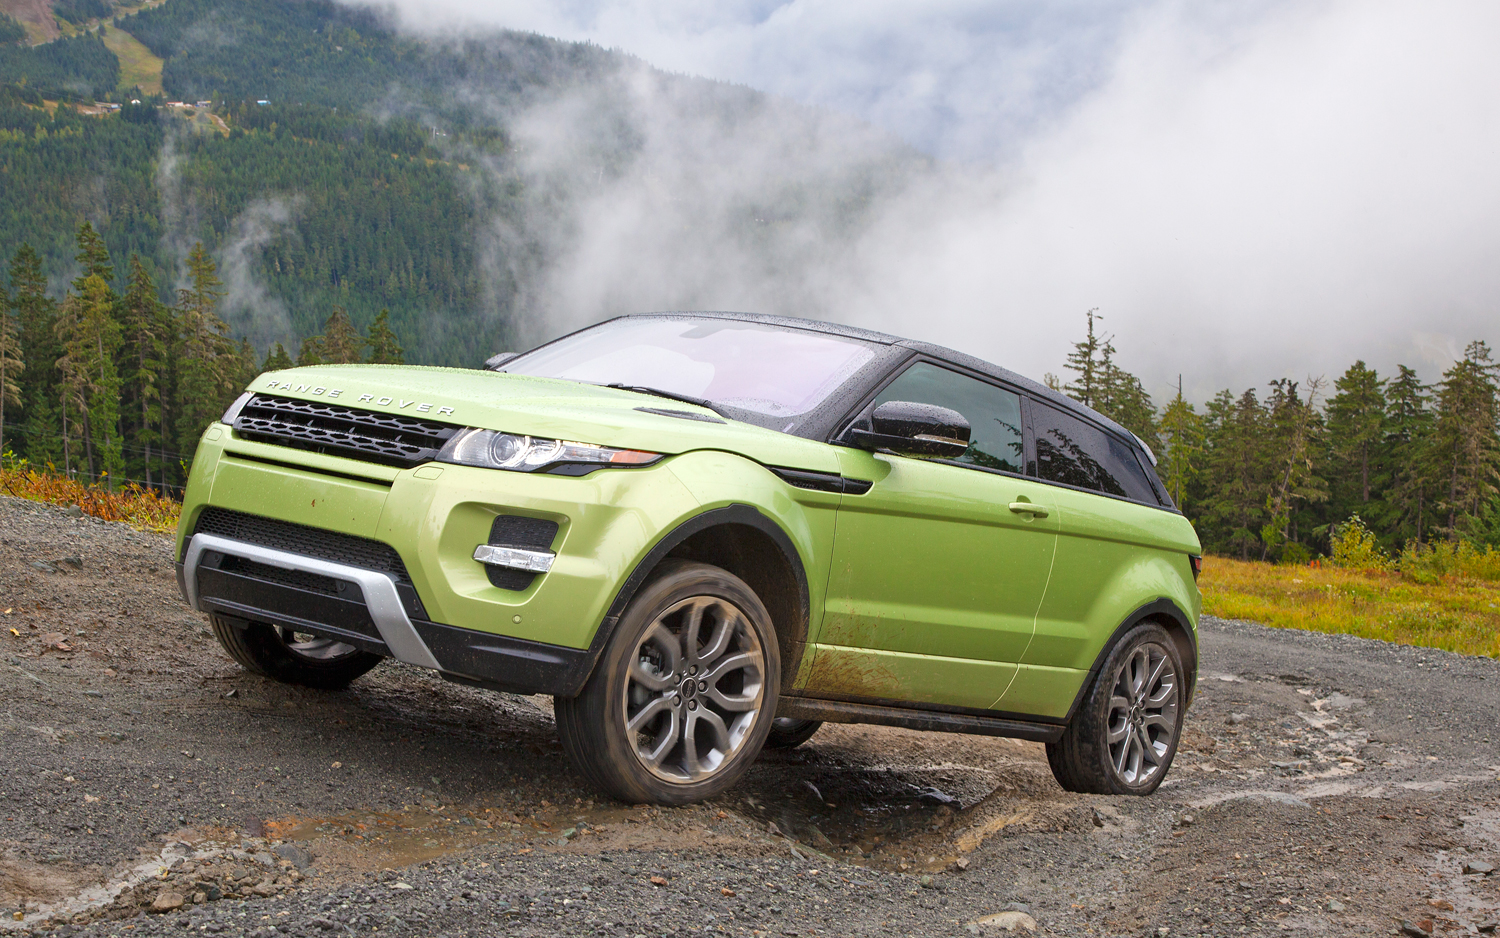 https://enthusiastnetwork.s3.amazonaws.com/uploads/sites/5/2011/10/2012-Land-Rover-Range-Rover-Evoque-3-door-front-three-quarters1.jpg?impolicy=entryimage